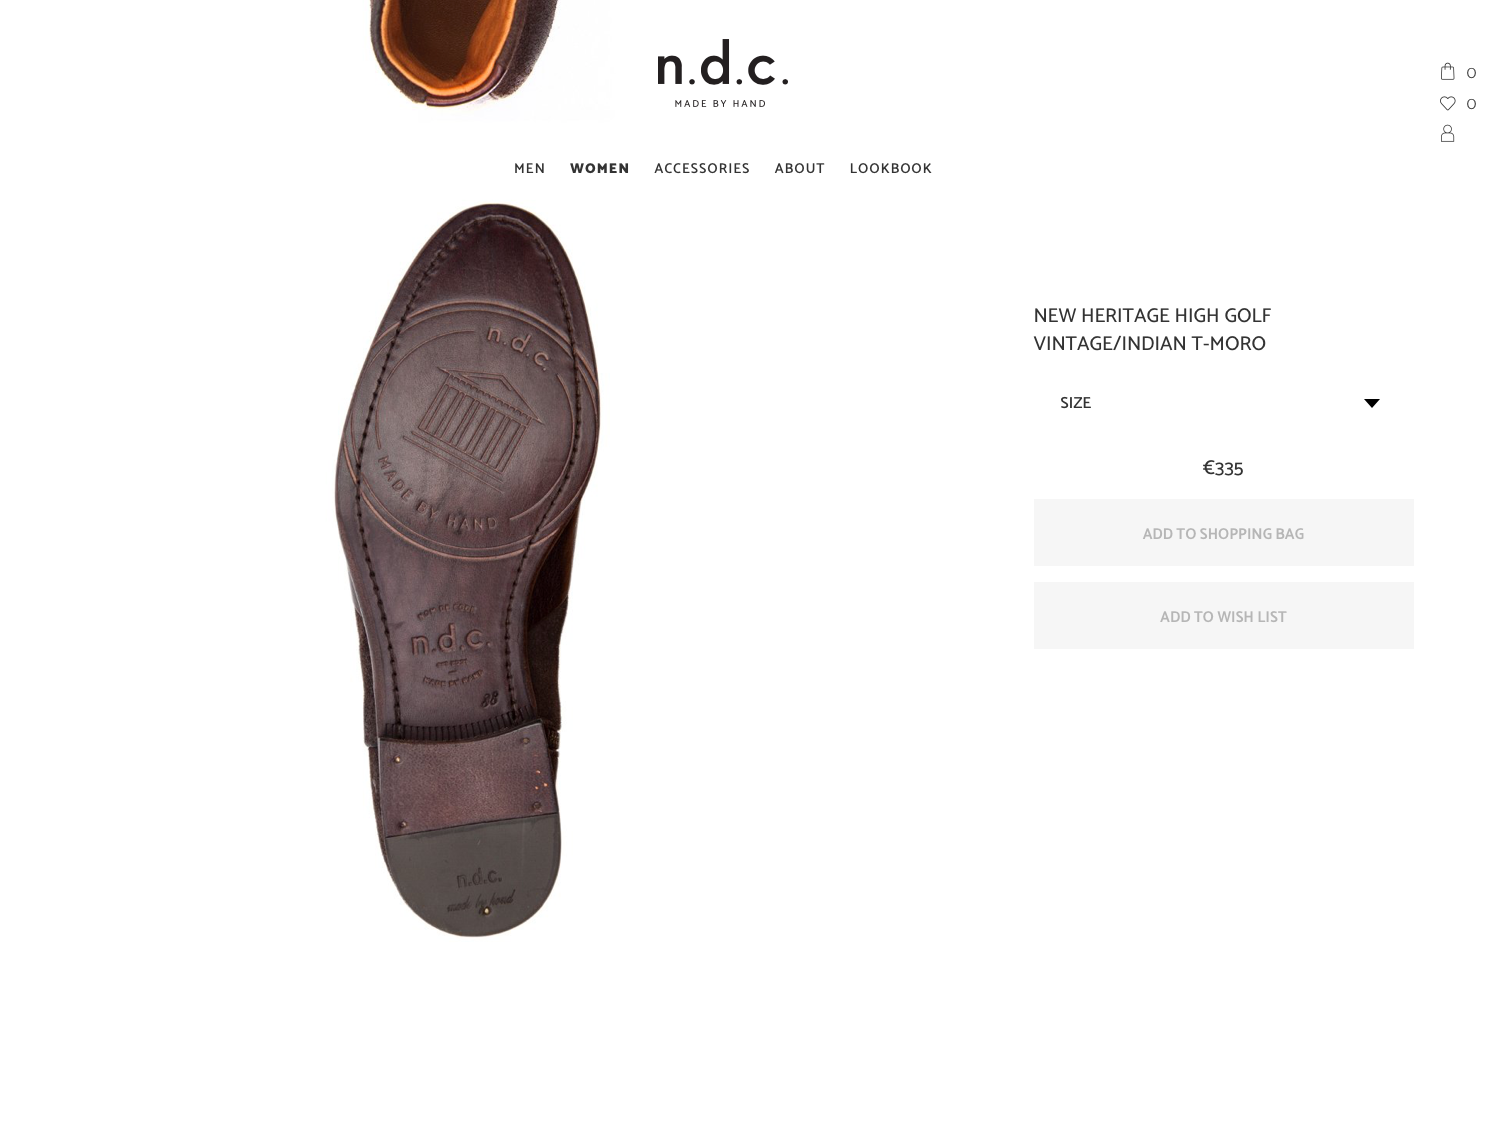 NDC MADE BY HAND 1 PRODUCT PHOTOGRAPHY.png